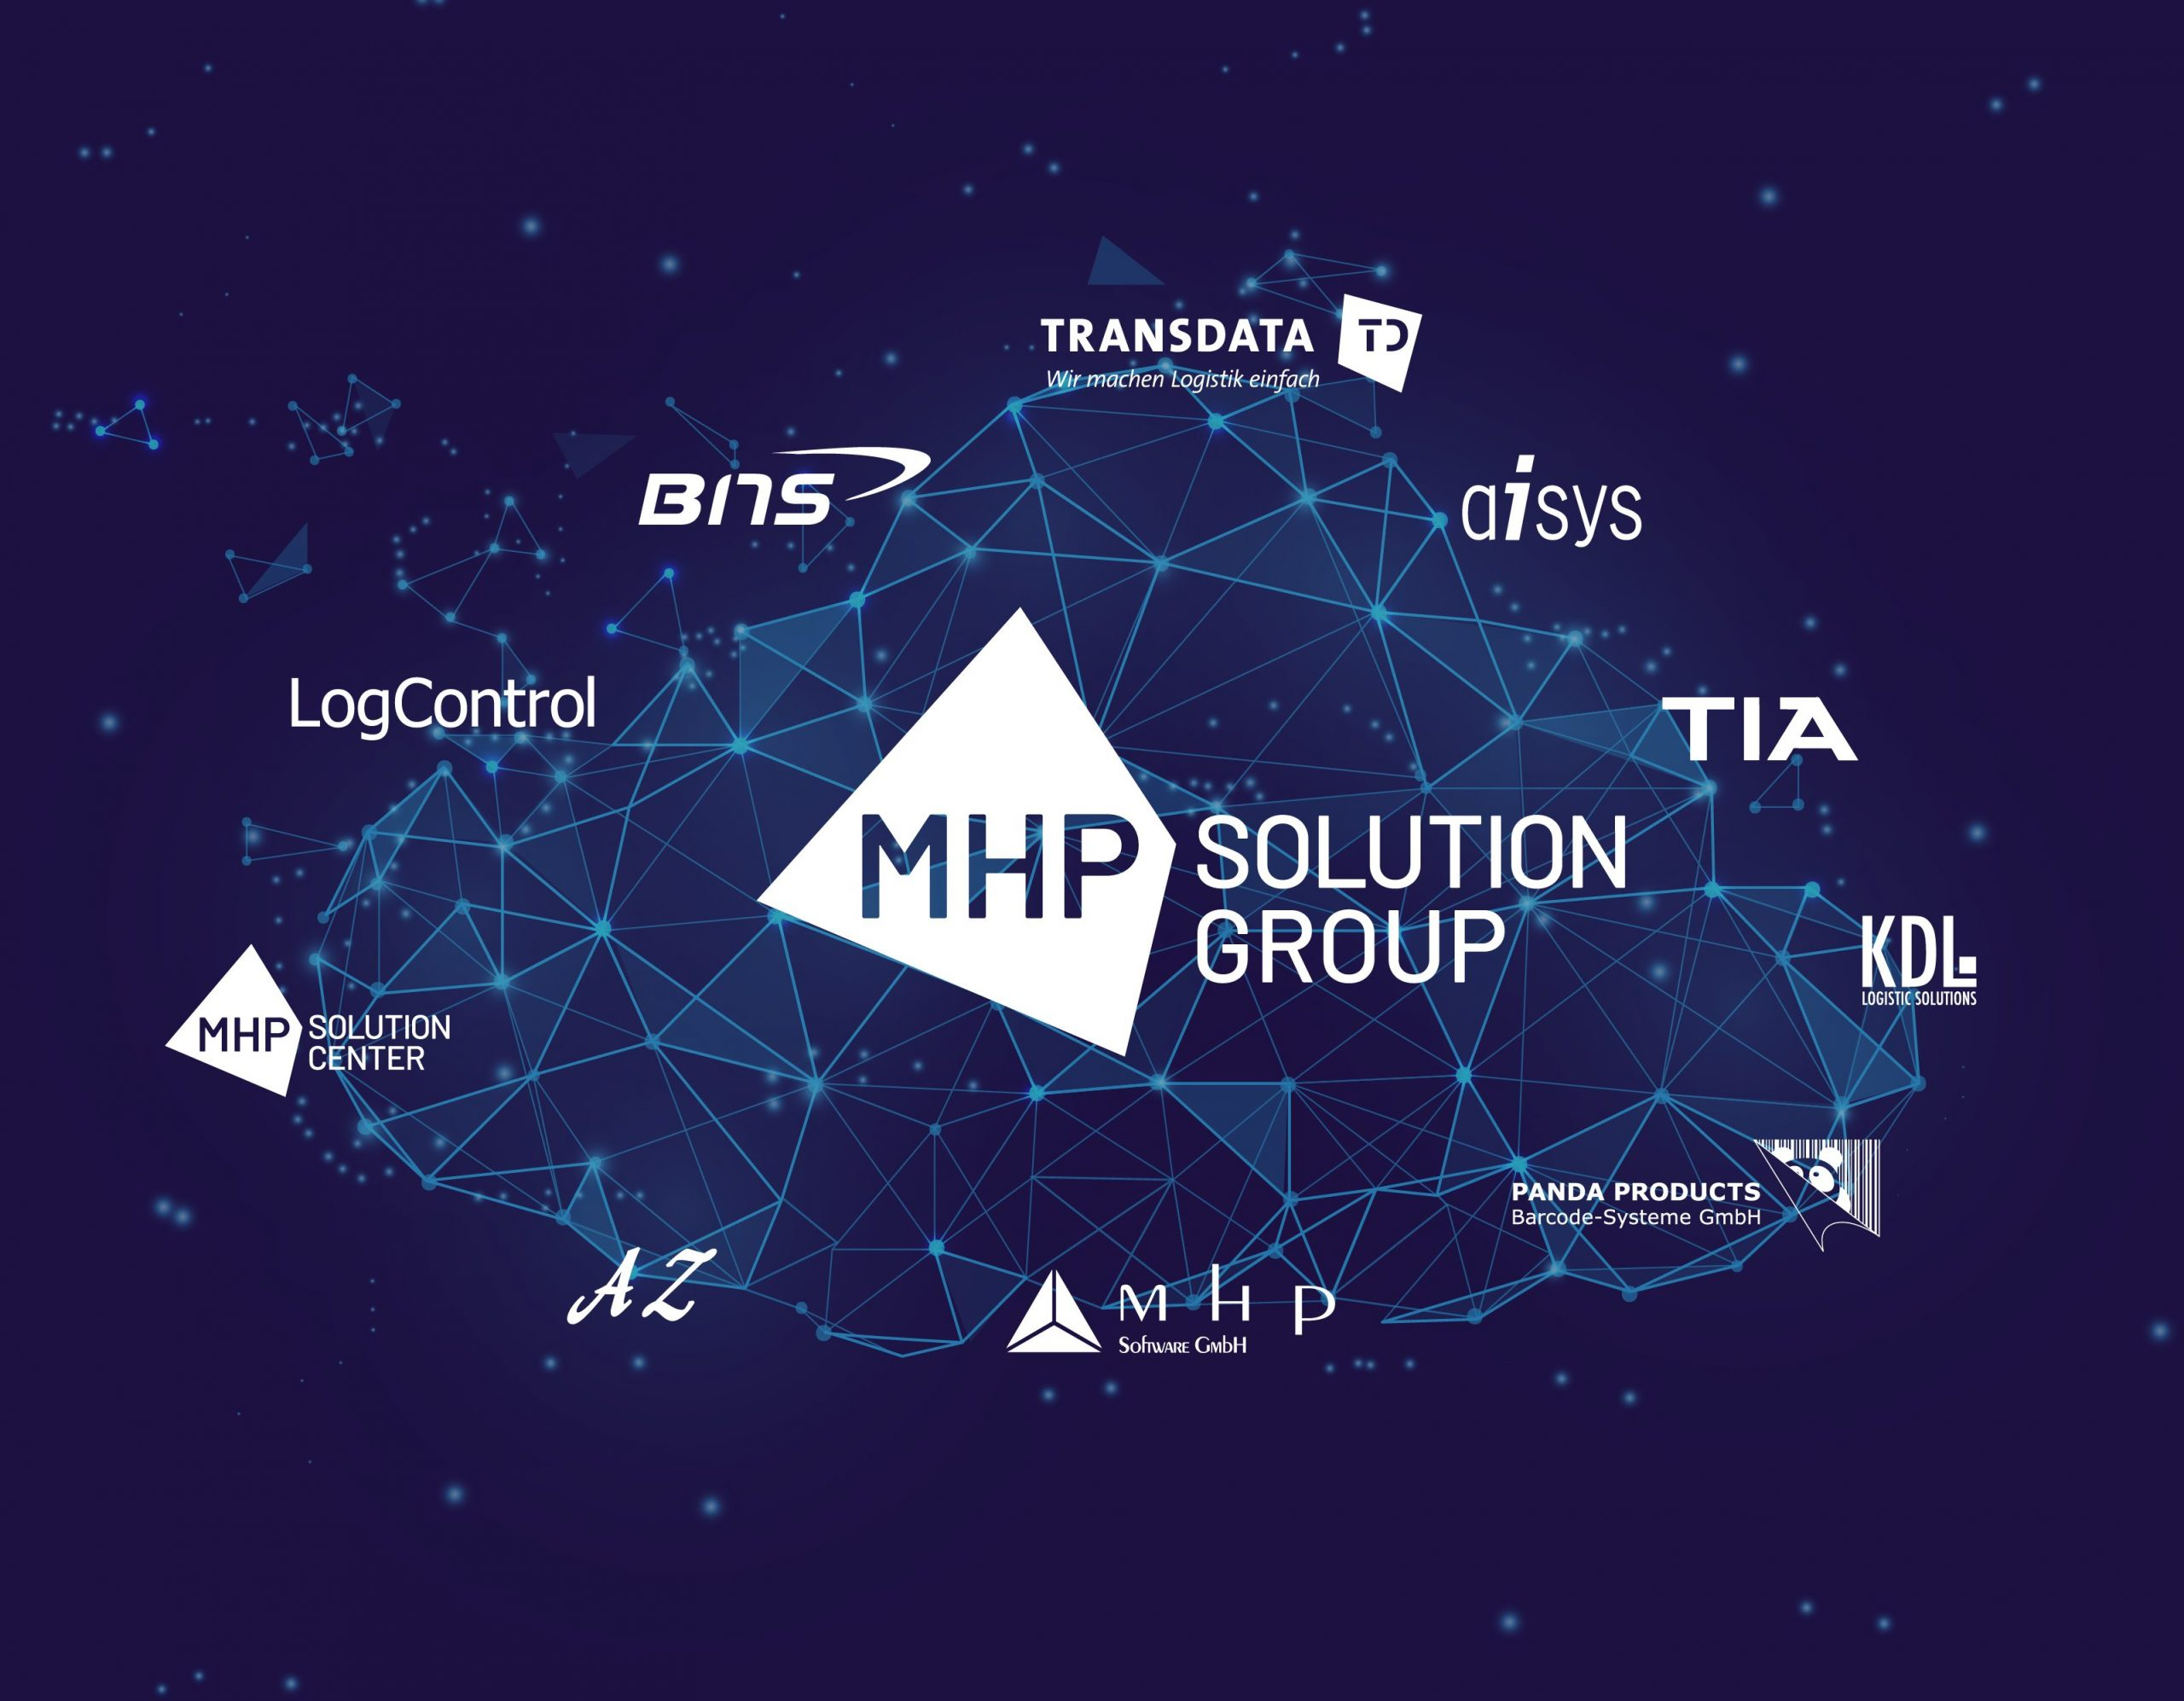 mhp-solution-group